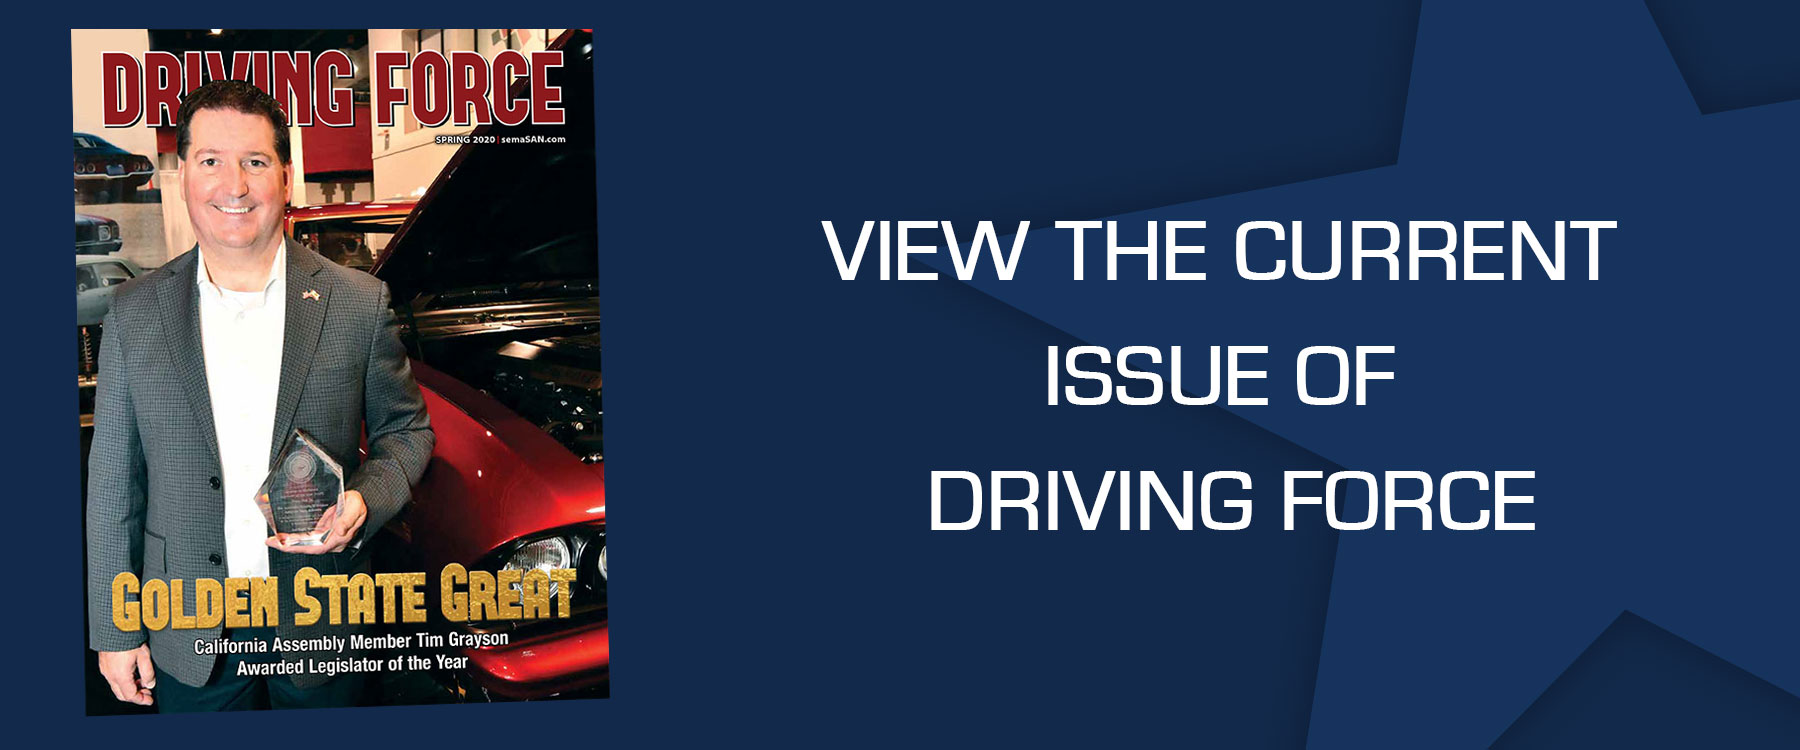 Driving Force Current Issue - Golden State Great